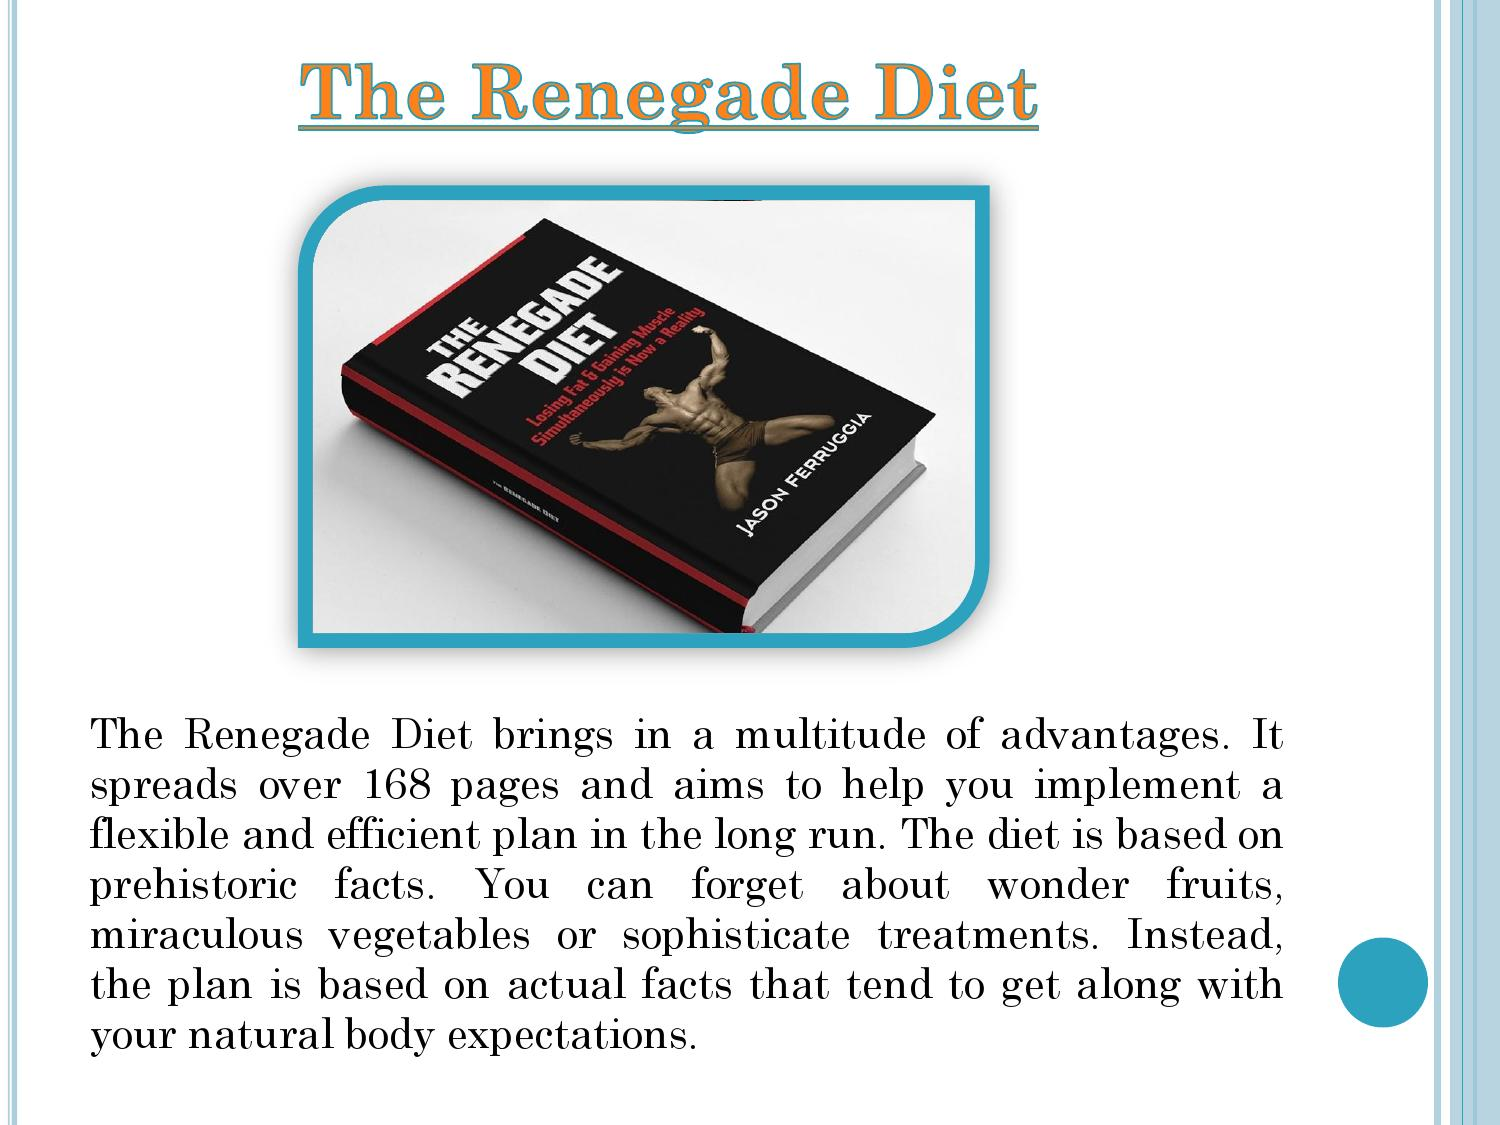 Renegade Diet Book This Diet Book incredibly Worth to Buy